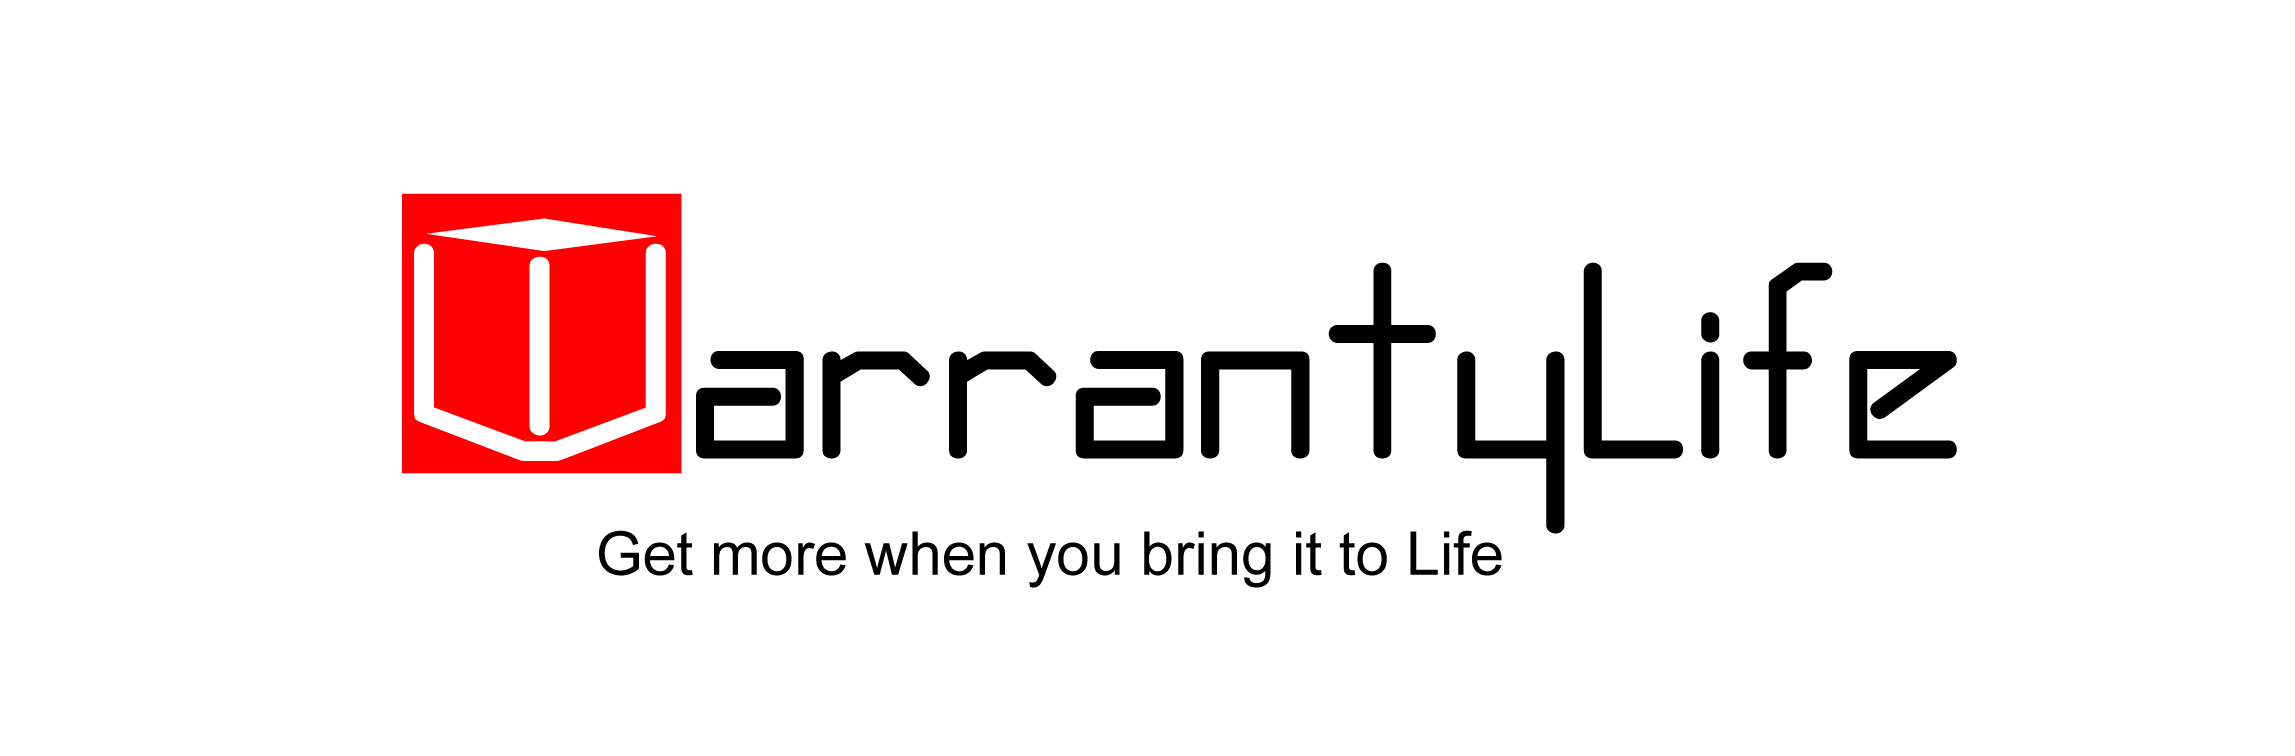 Logo Design by mozaikmazao - Entry No. 20 in the Logo Design Contest WarrantyLife Logo Design.